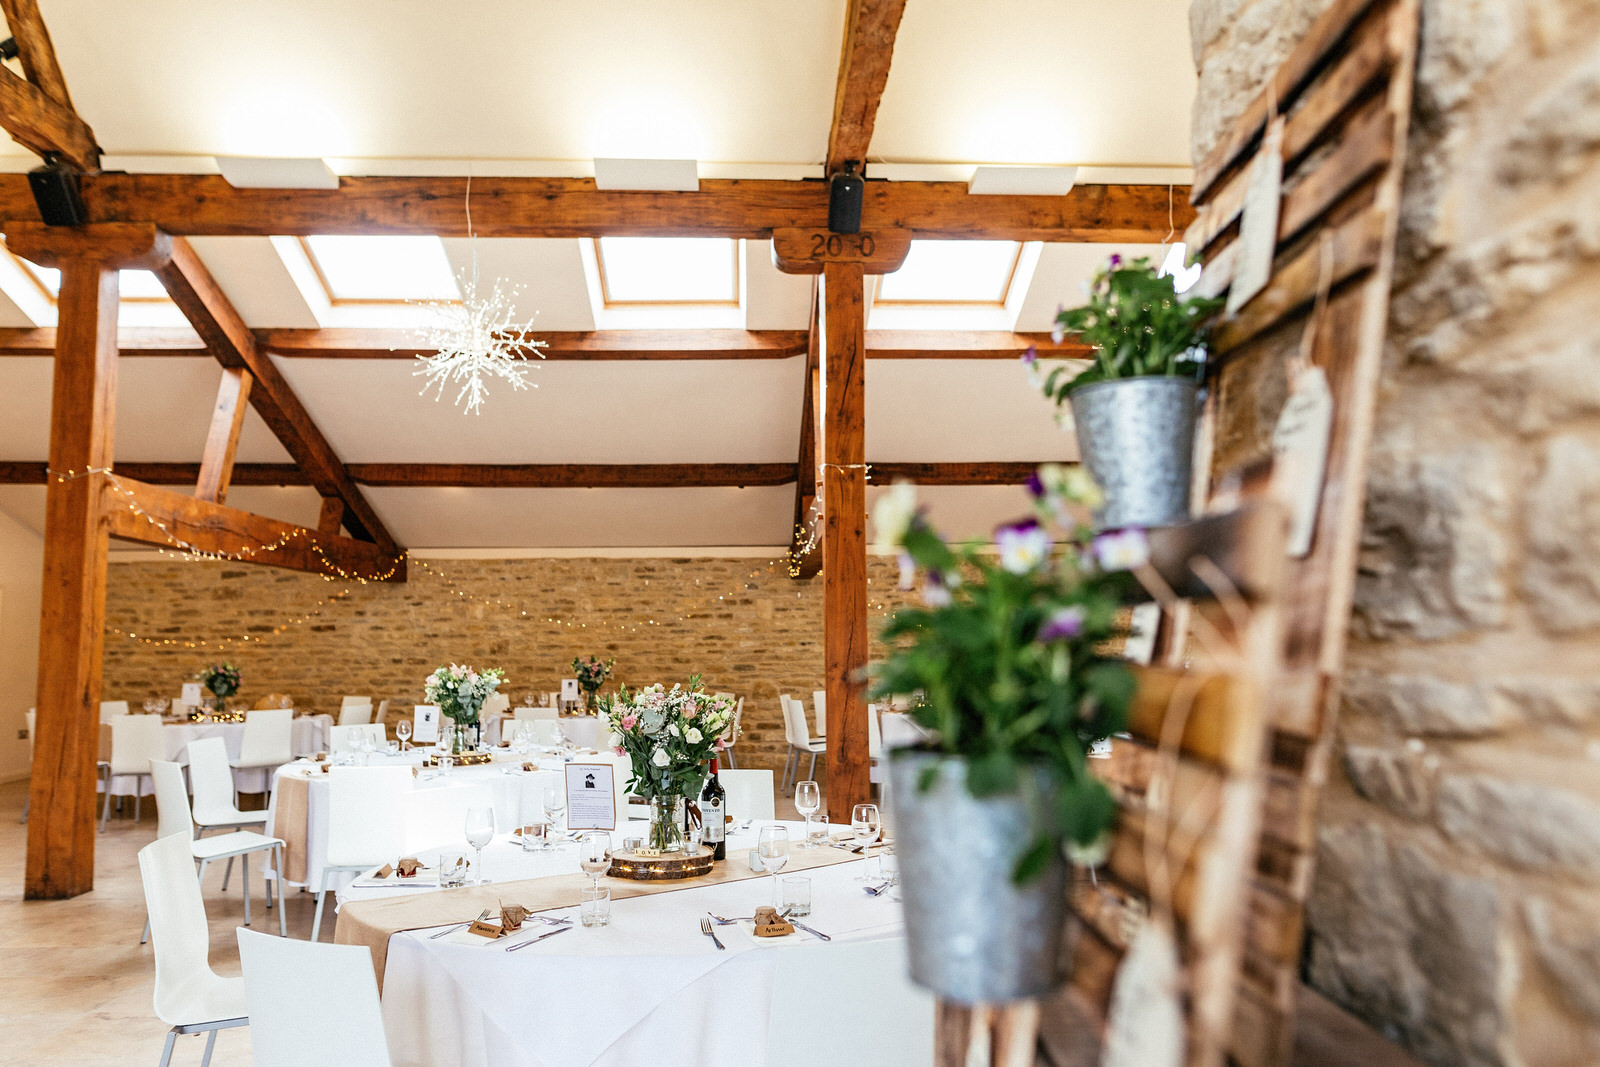 Winkworth-Farm-Wedding-Photographer-069.jpg